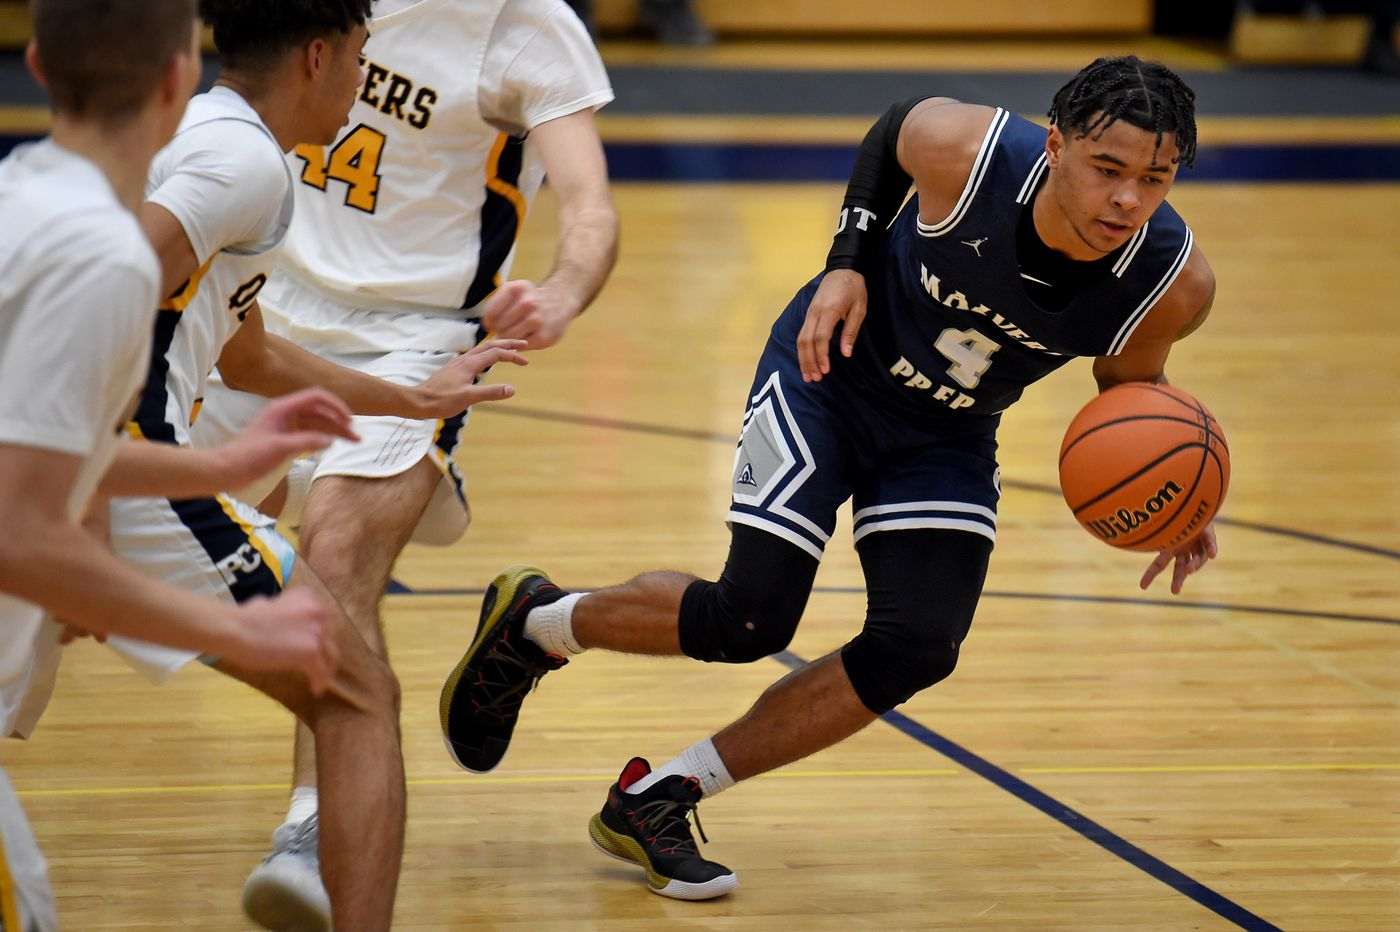 Deuce Turner finds other ways to lead Malvern Prep to victory